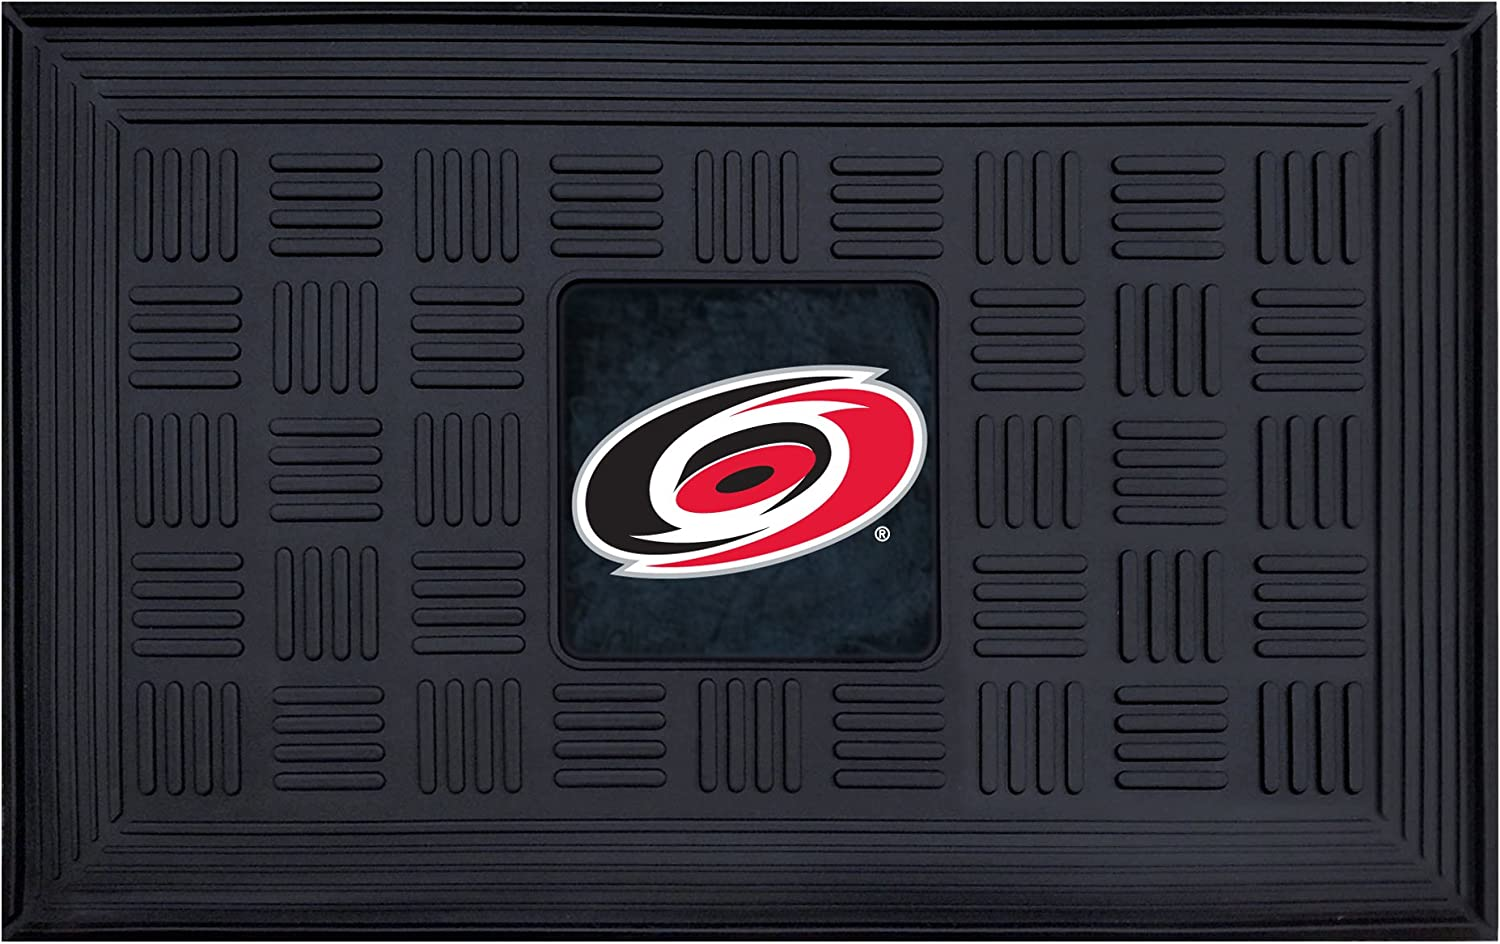 Fanmats 11481 NHL Carolina Hurricanes Vinyl Medallion Door Mat